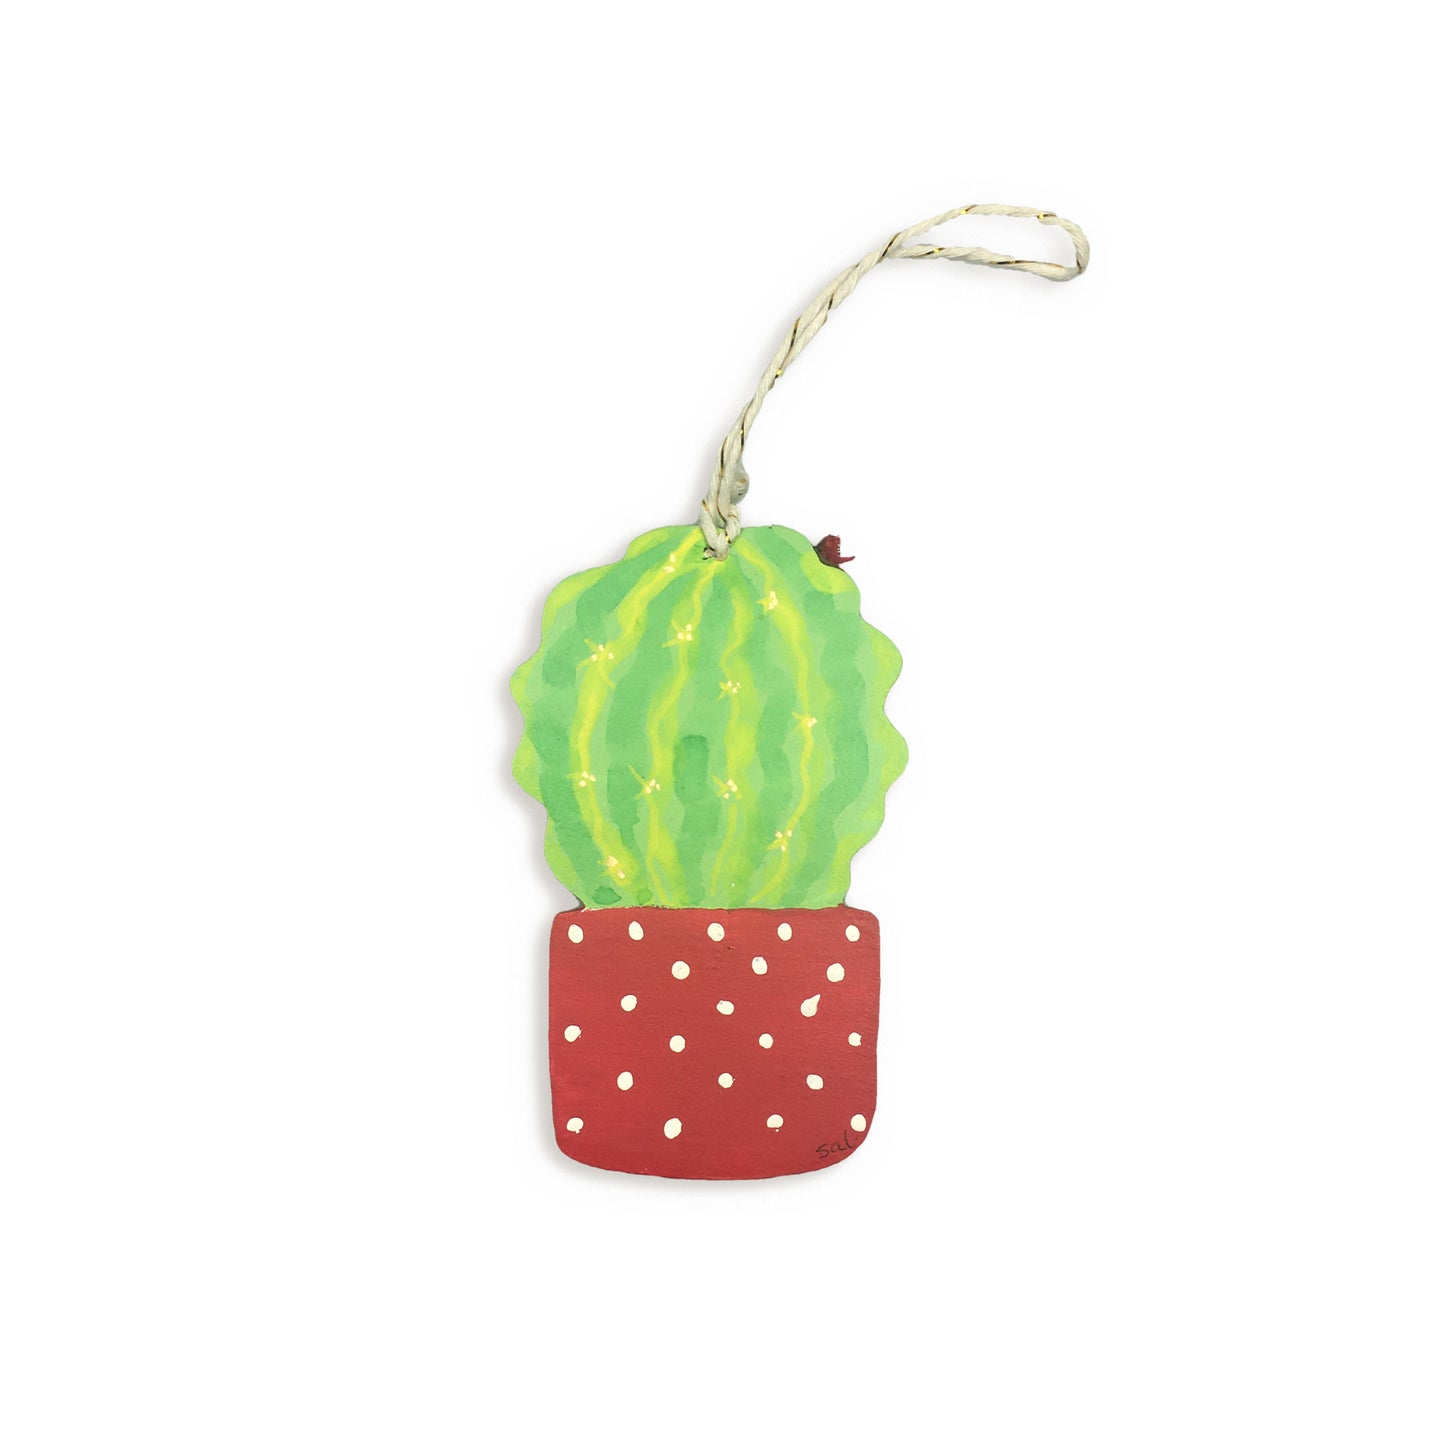 Wooden cactus hanging tag - potted barrel cactus